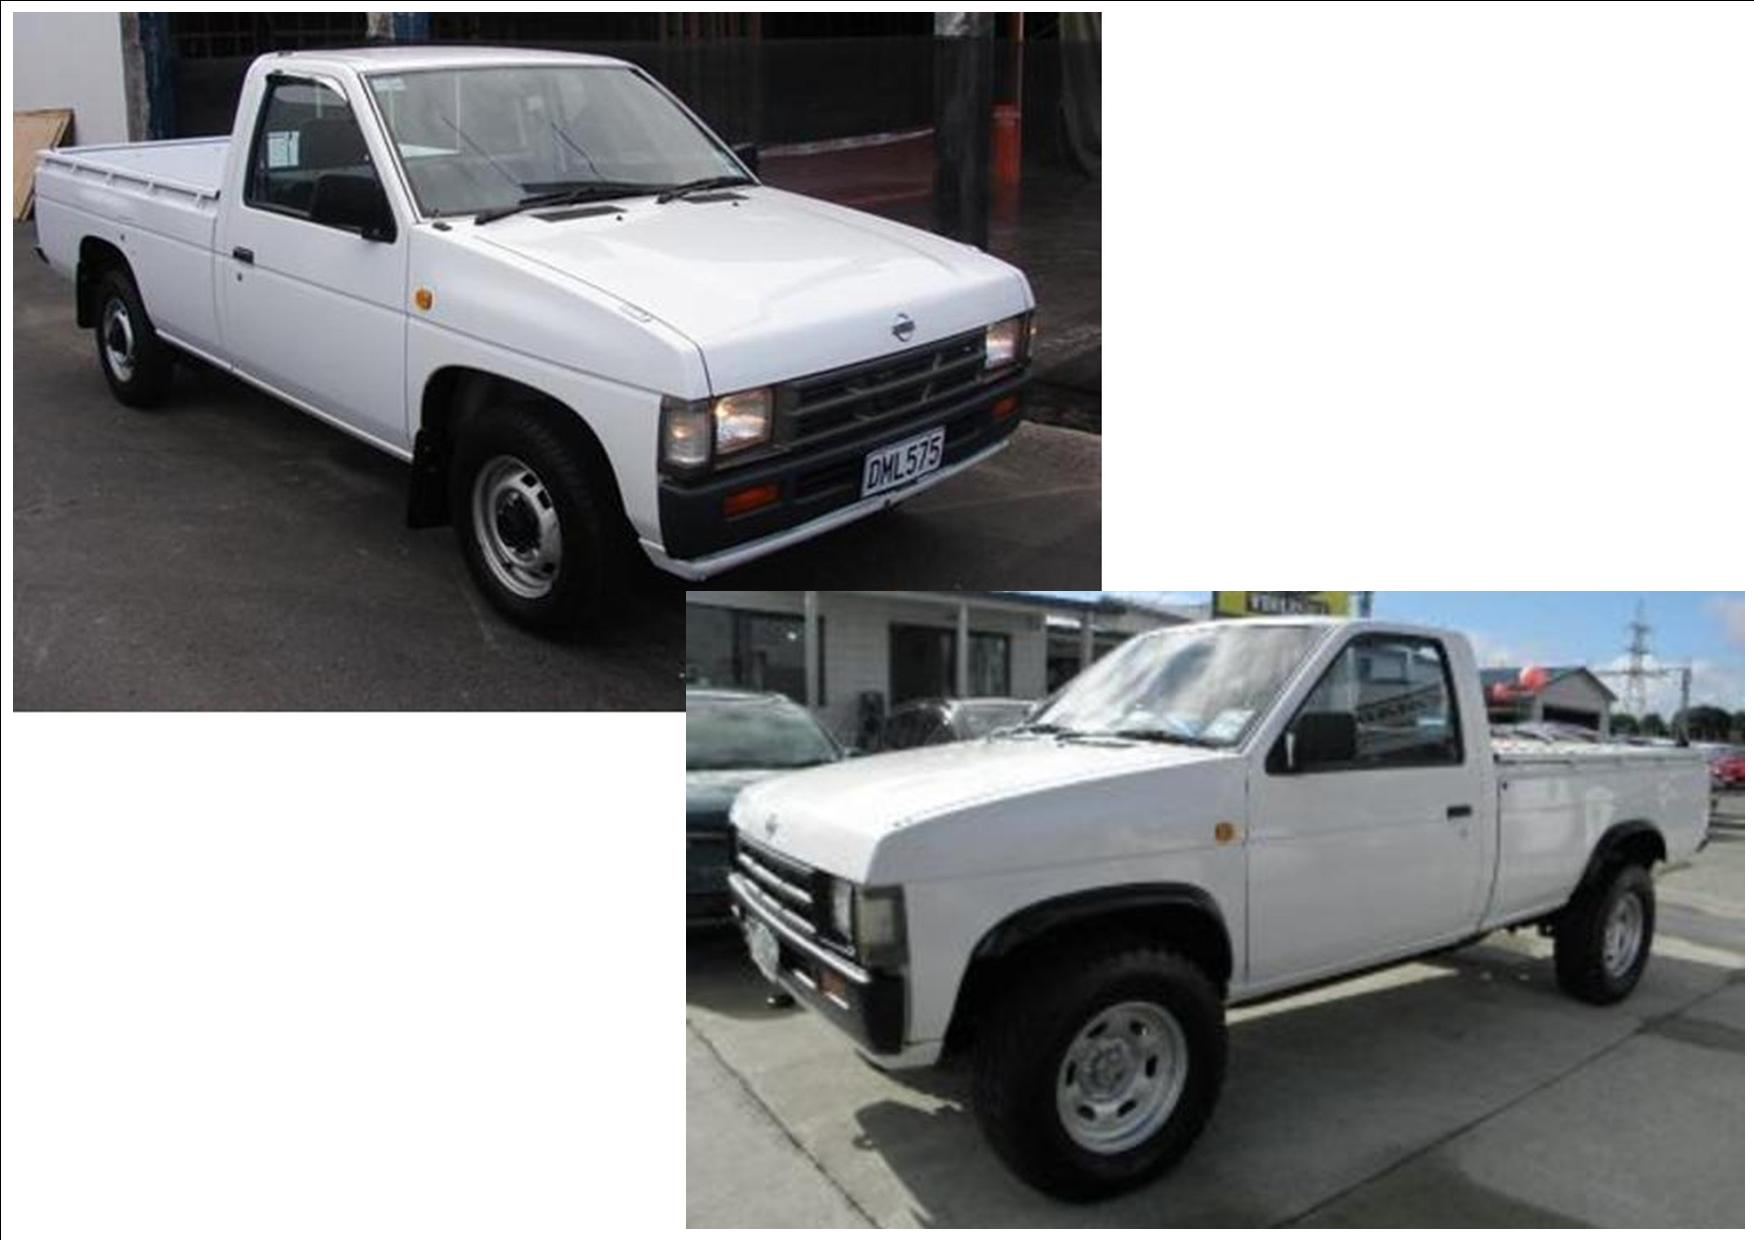 Listing All Models For Nissan Api Nz Auto Parts Industrial 1985 Hardbody Engine Schematics Navara 1992 1996 D21 2wd 4wd